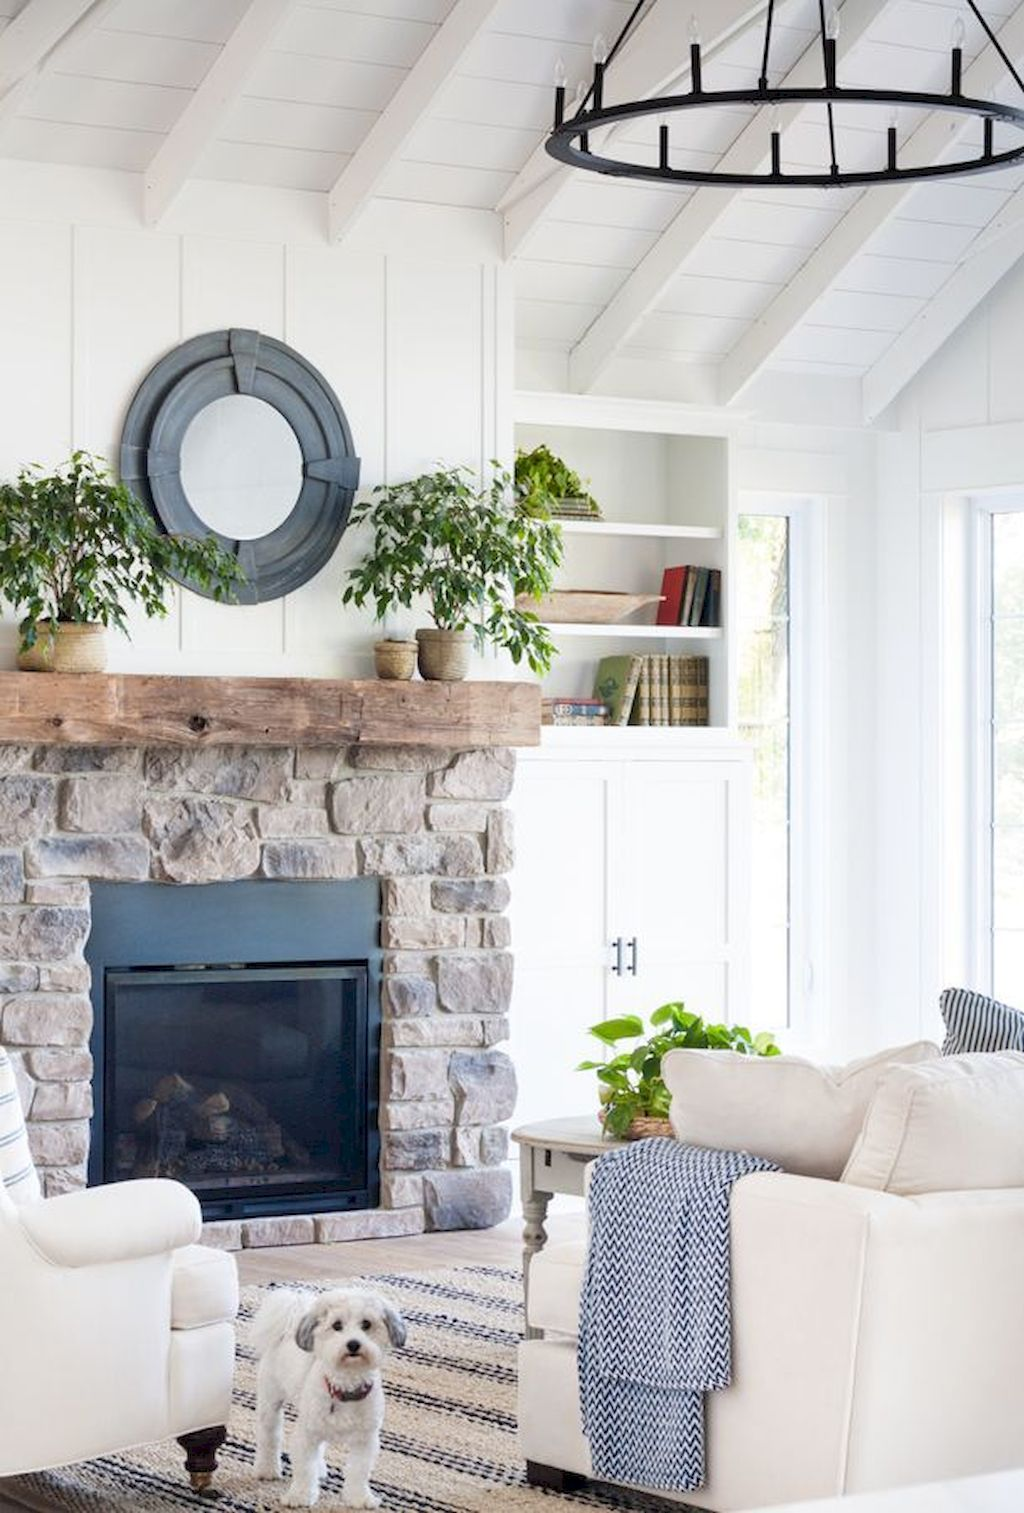 Cool 65 Beautiful Coastal Themed Living Room Decorating Ideas https ...